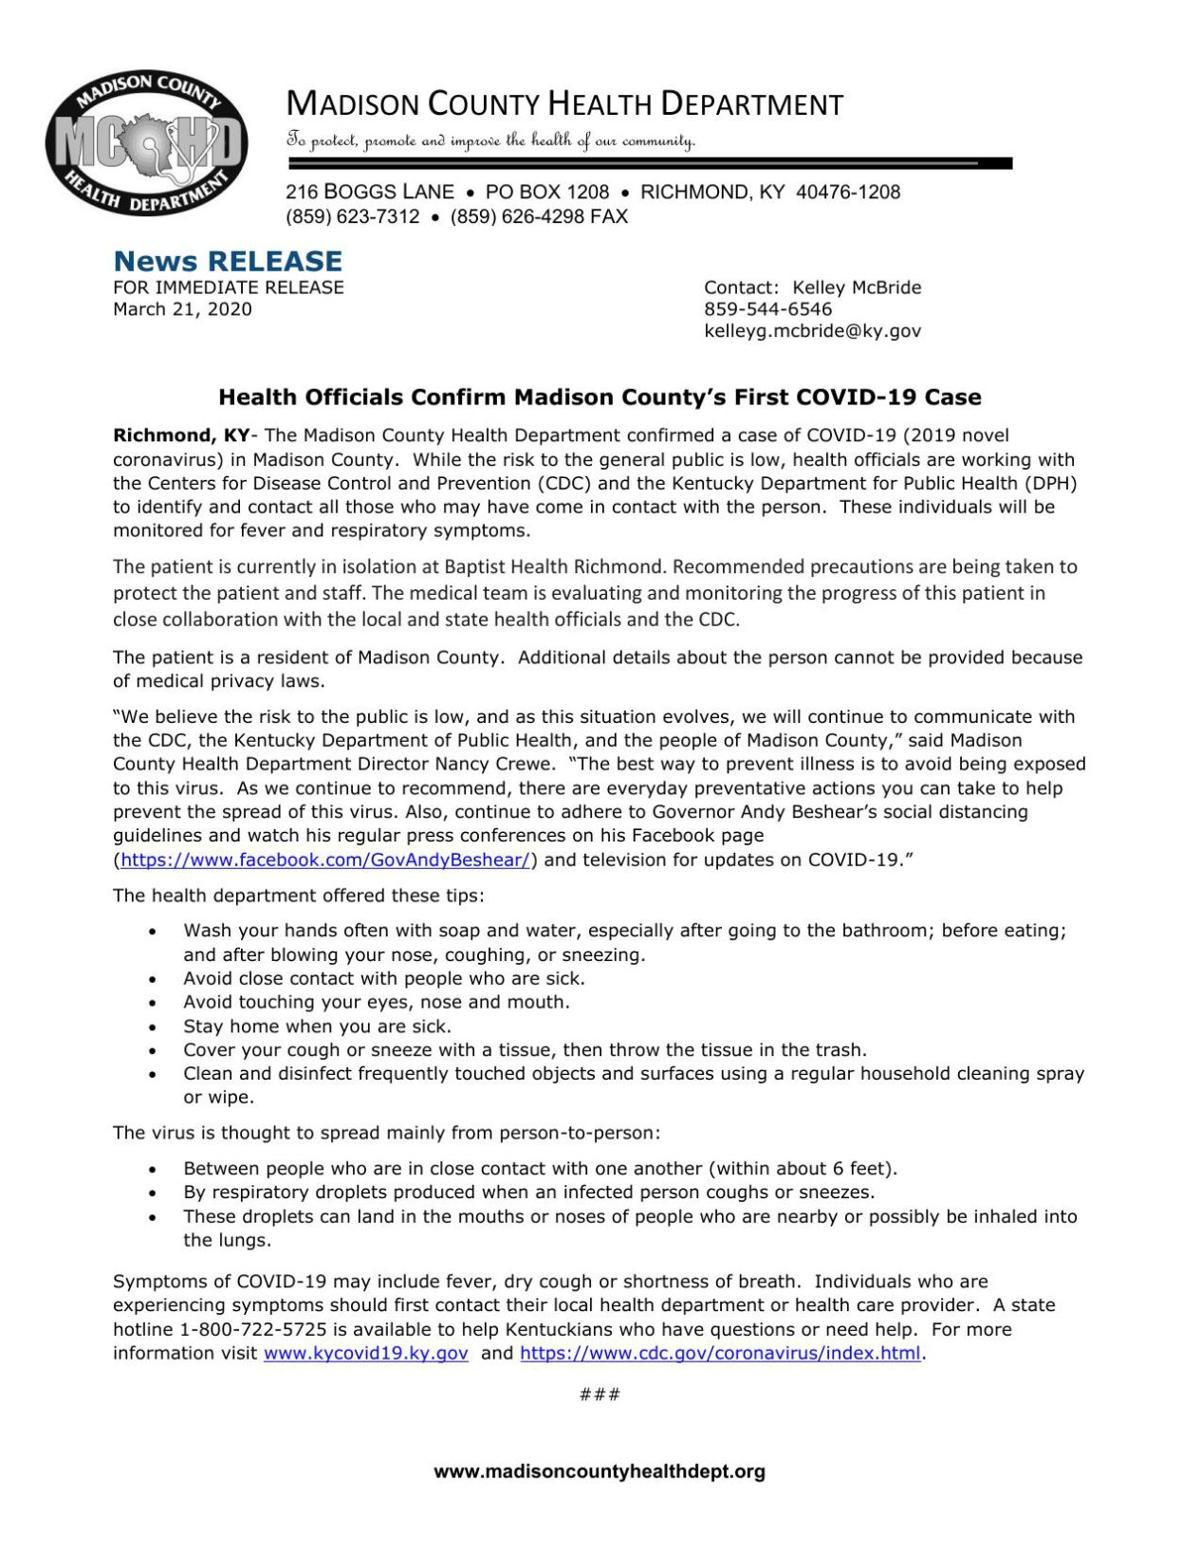 Madison County Health Department Press Release